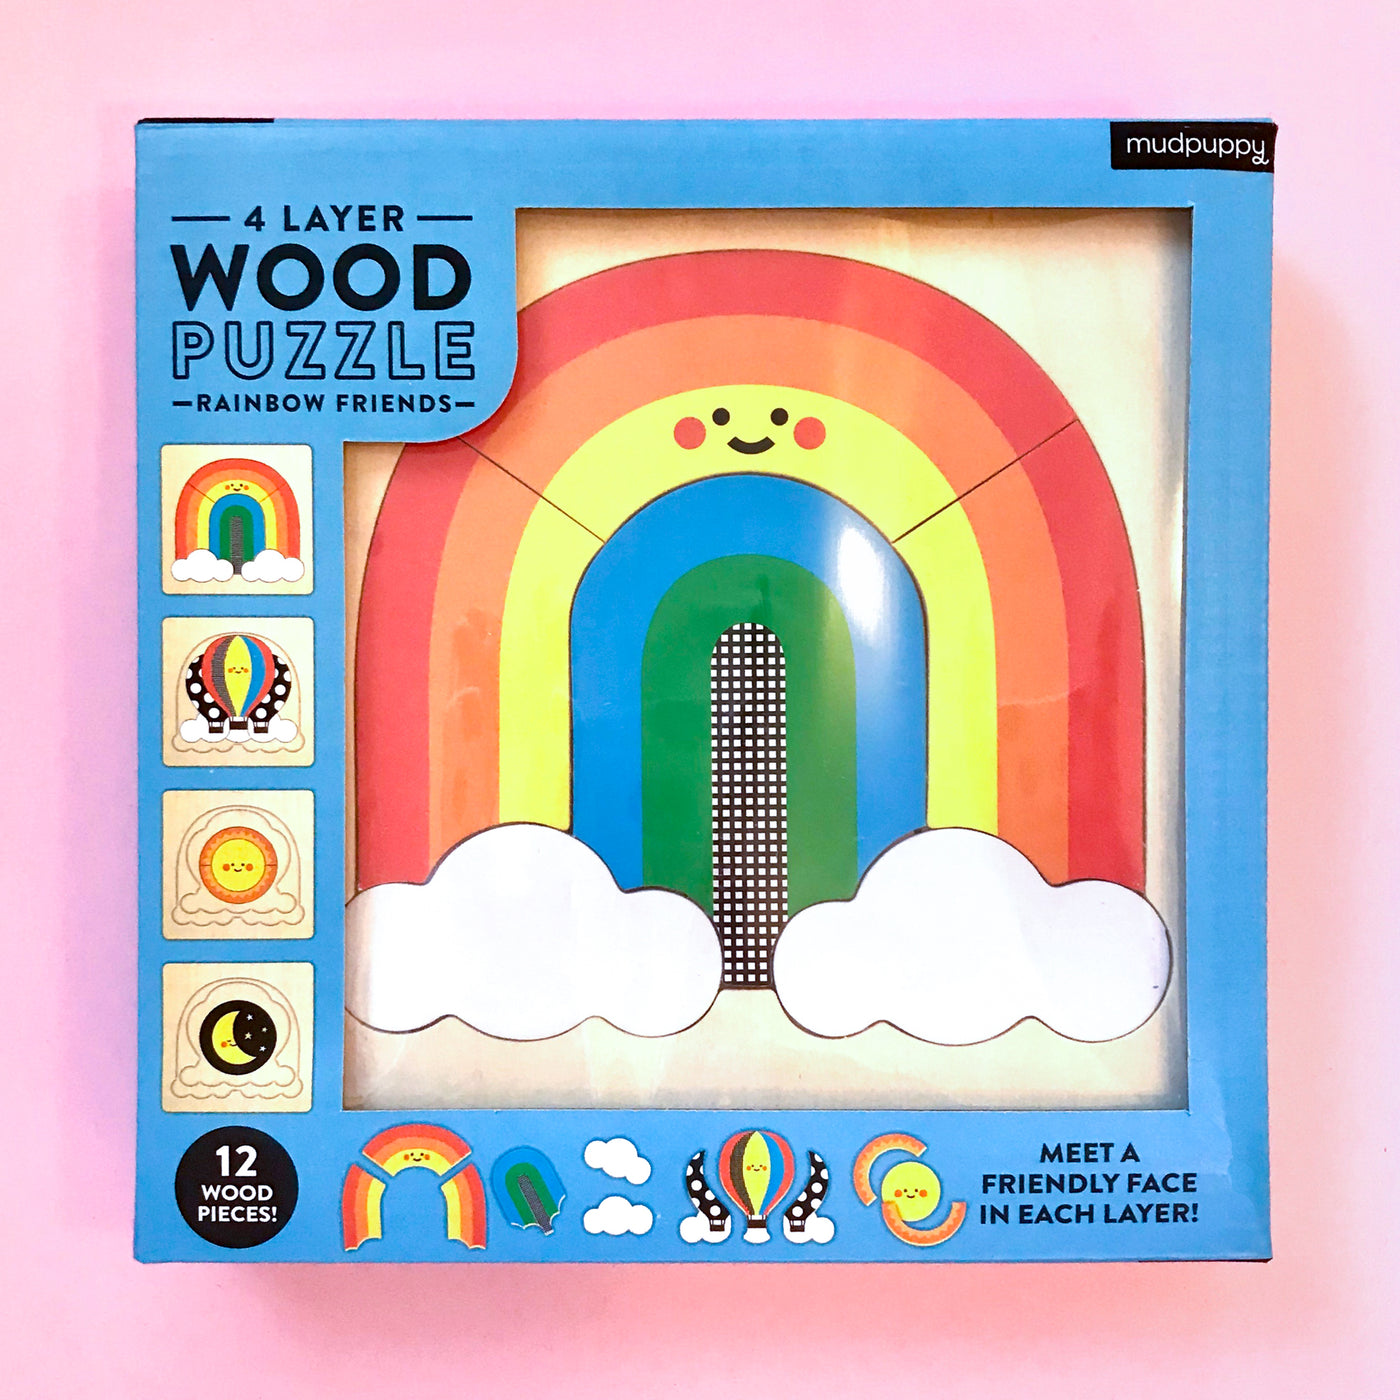 Rainbow Friends Wood Puzzle by Mudpuppy